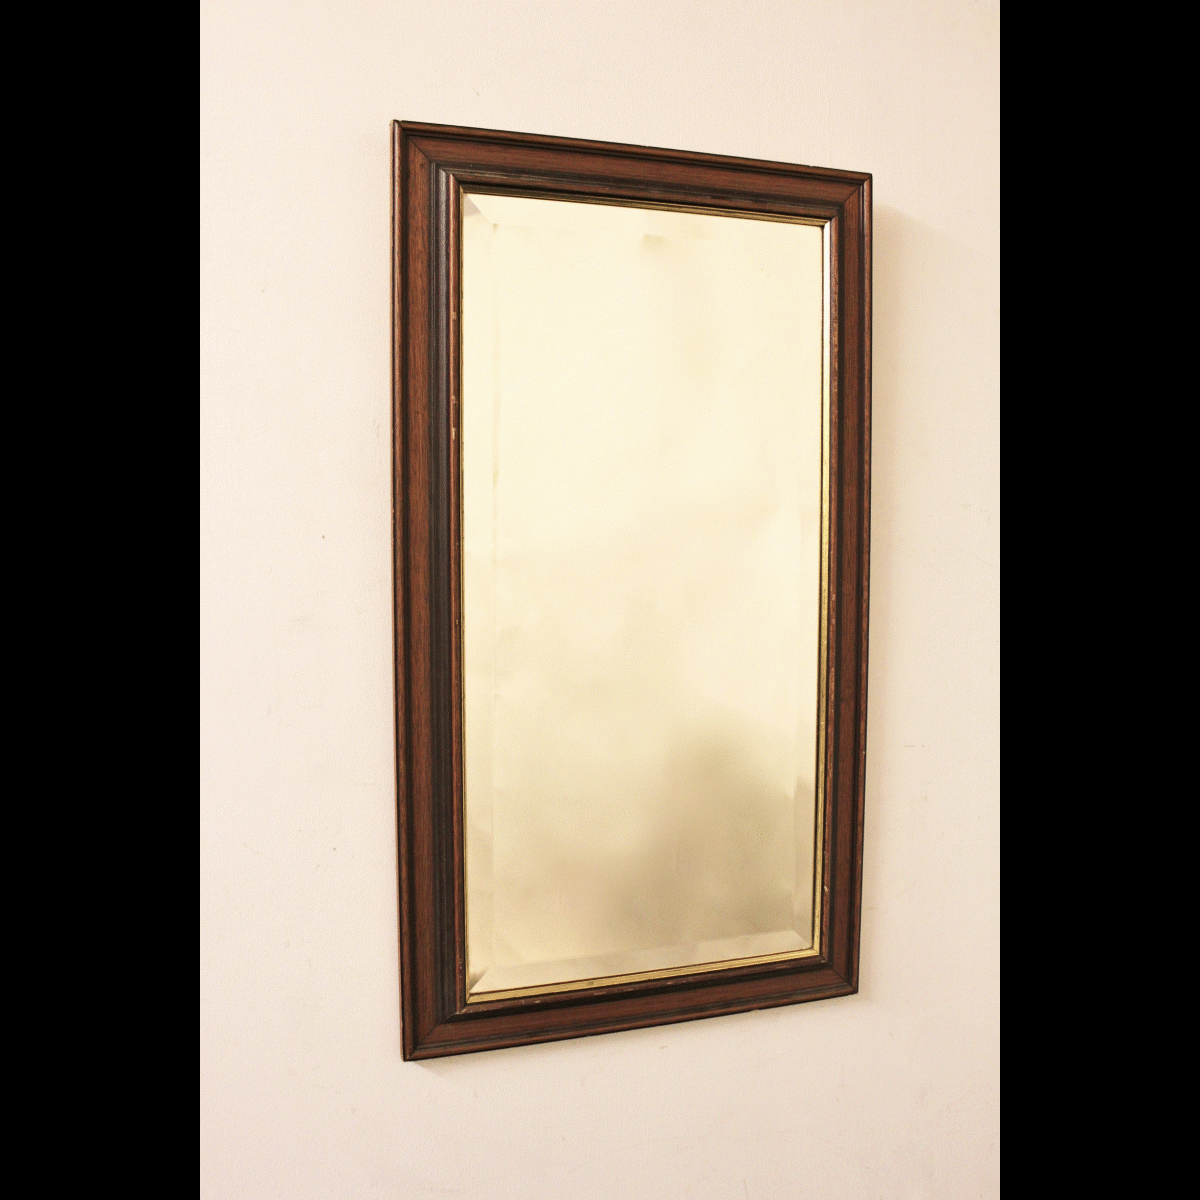 0070027 mirror x1 40cm wide by 70cm long stockyard north for Long wide mirror